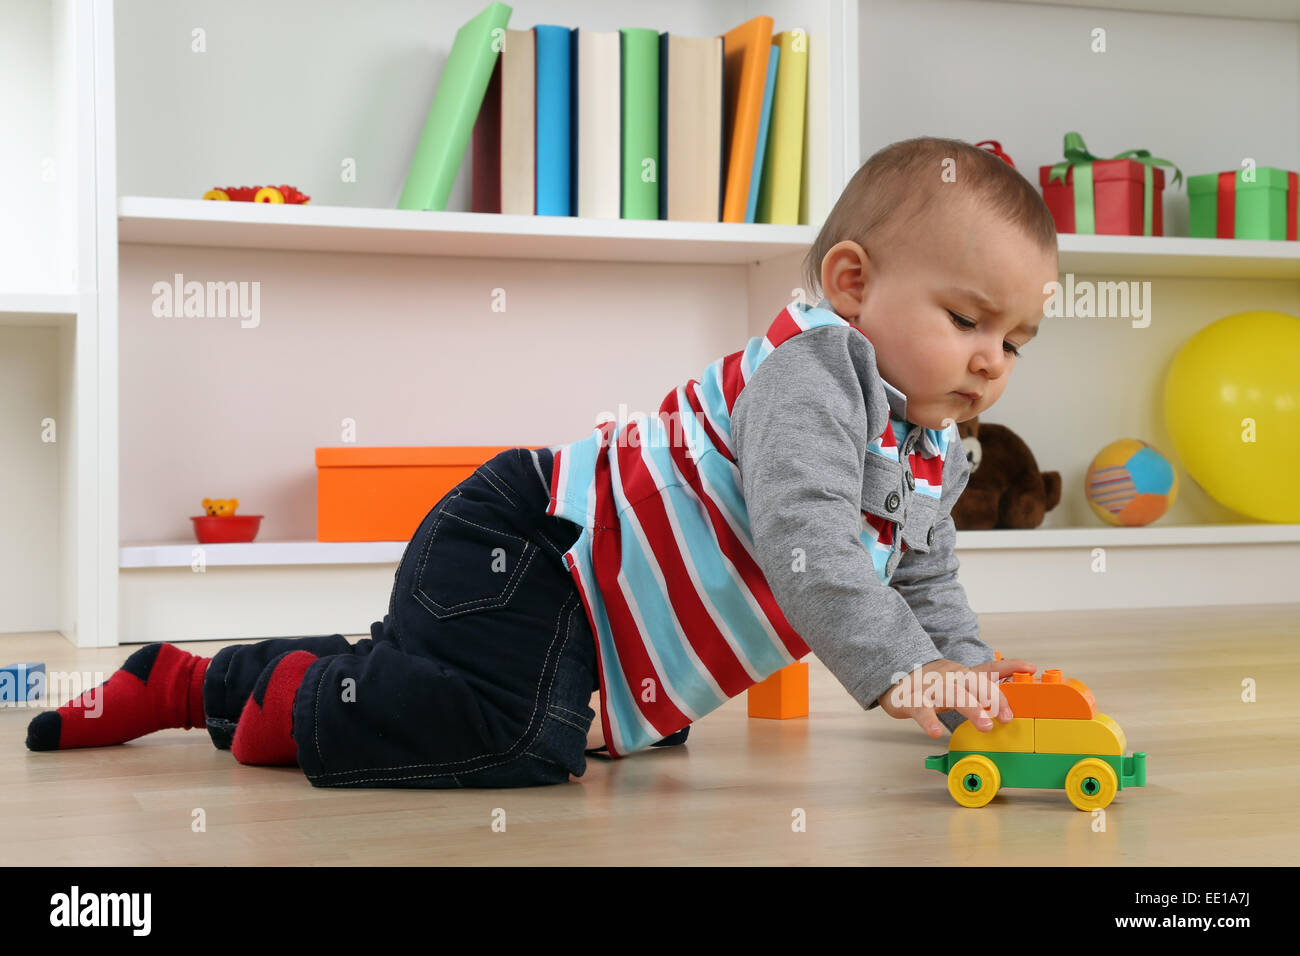 Portrait of a baby playing with car toy in children's room Stock Photo